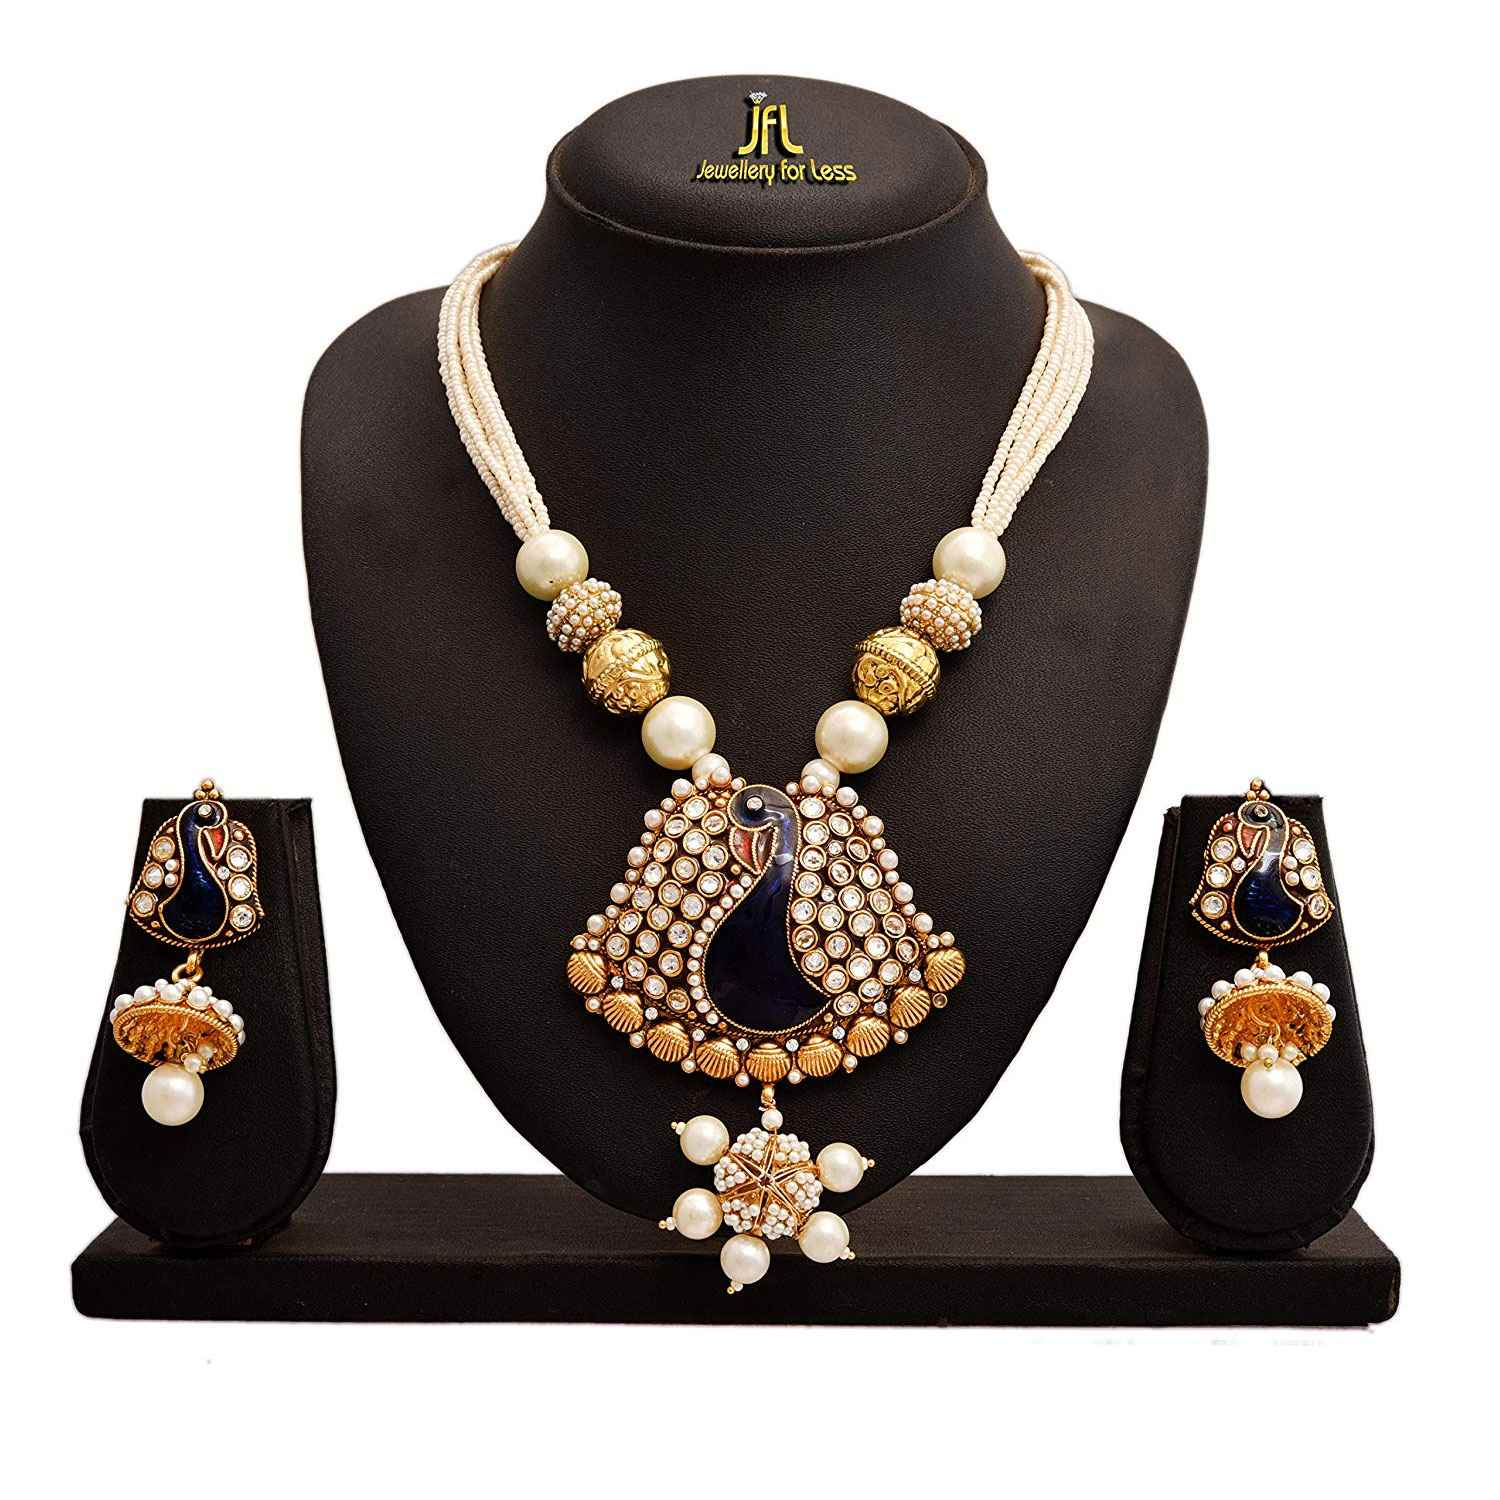 JFL - Jewellery for Less Traditional Ethnic One Gram Gold Plated Peacock Pearl Designer Necklace Set for Women and Girls